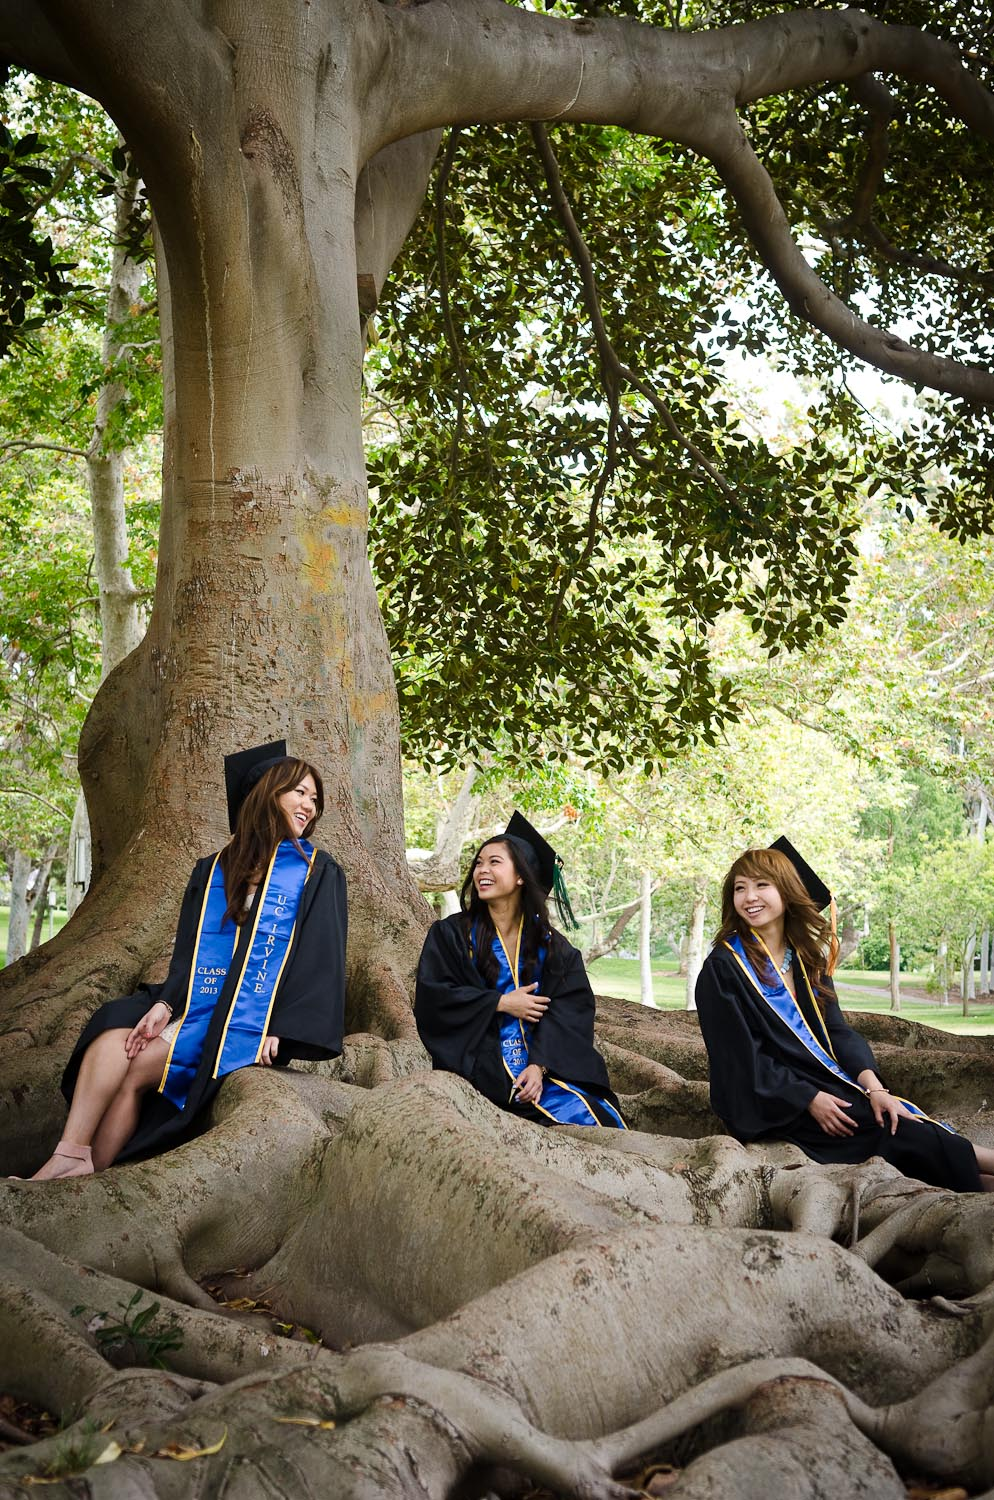 Bryan-Miraflor-Photography-Christine-Bea-Natasha-Grad-Portraits-Group-0086.jpg